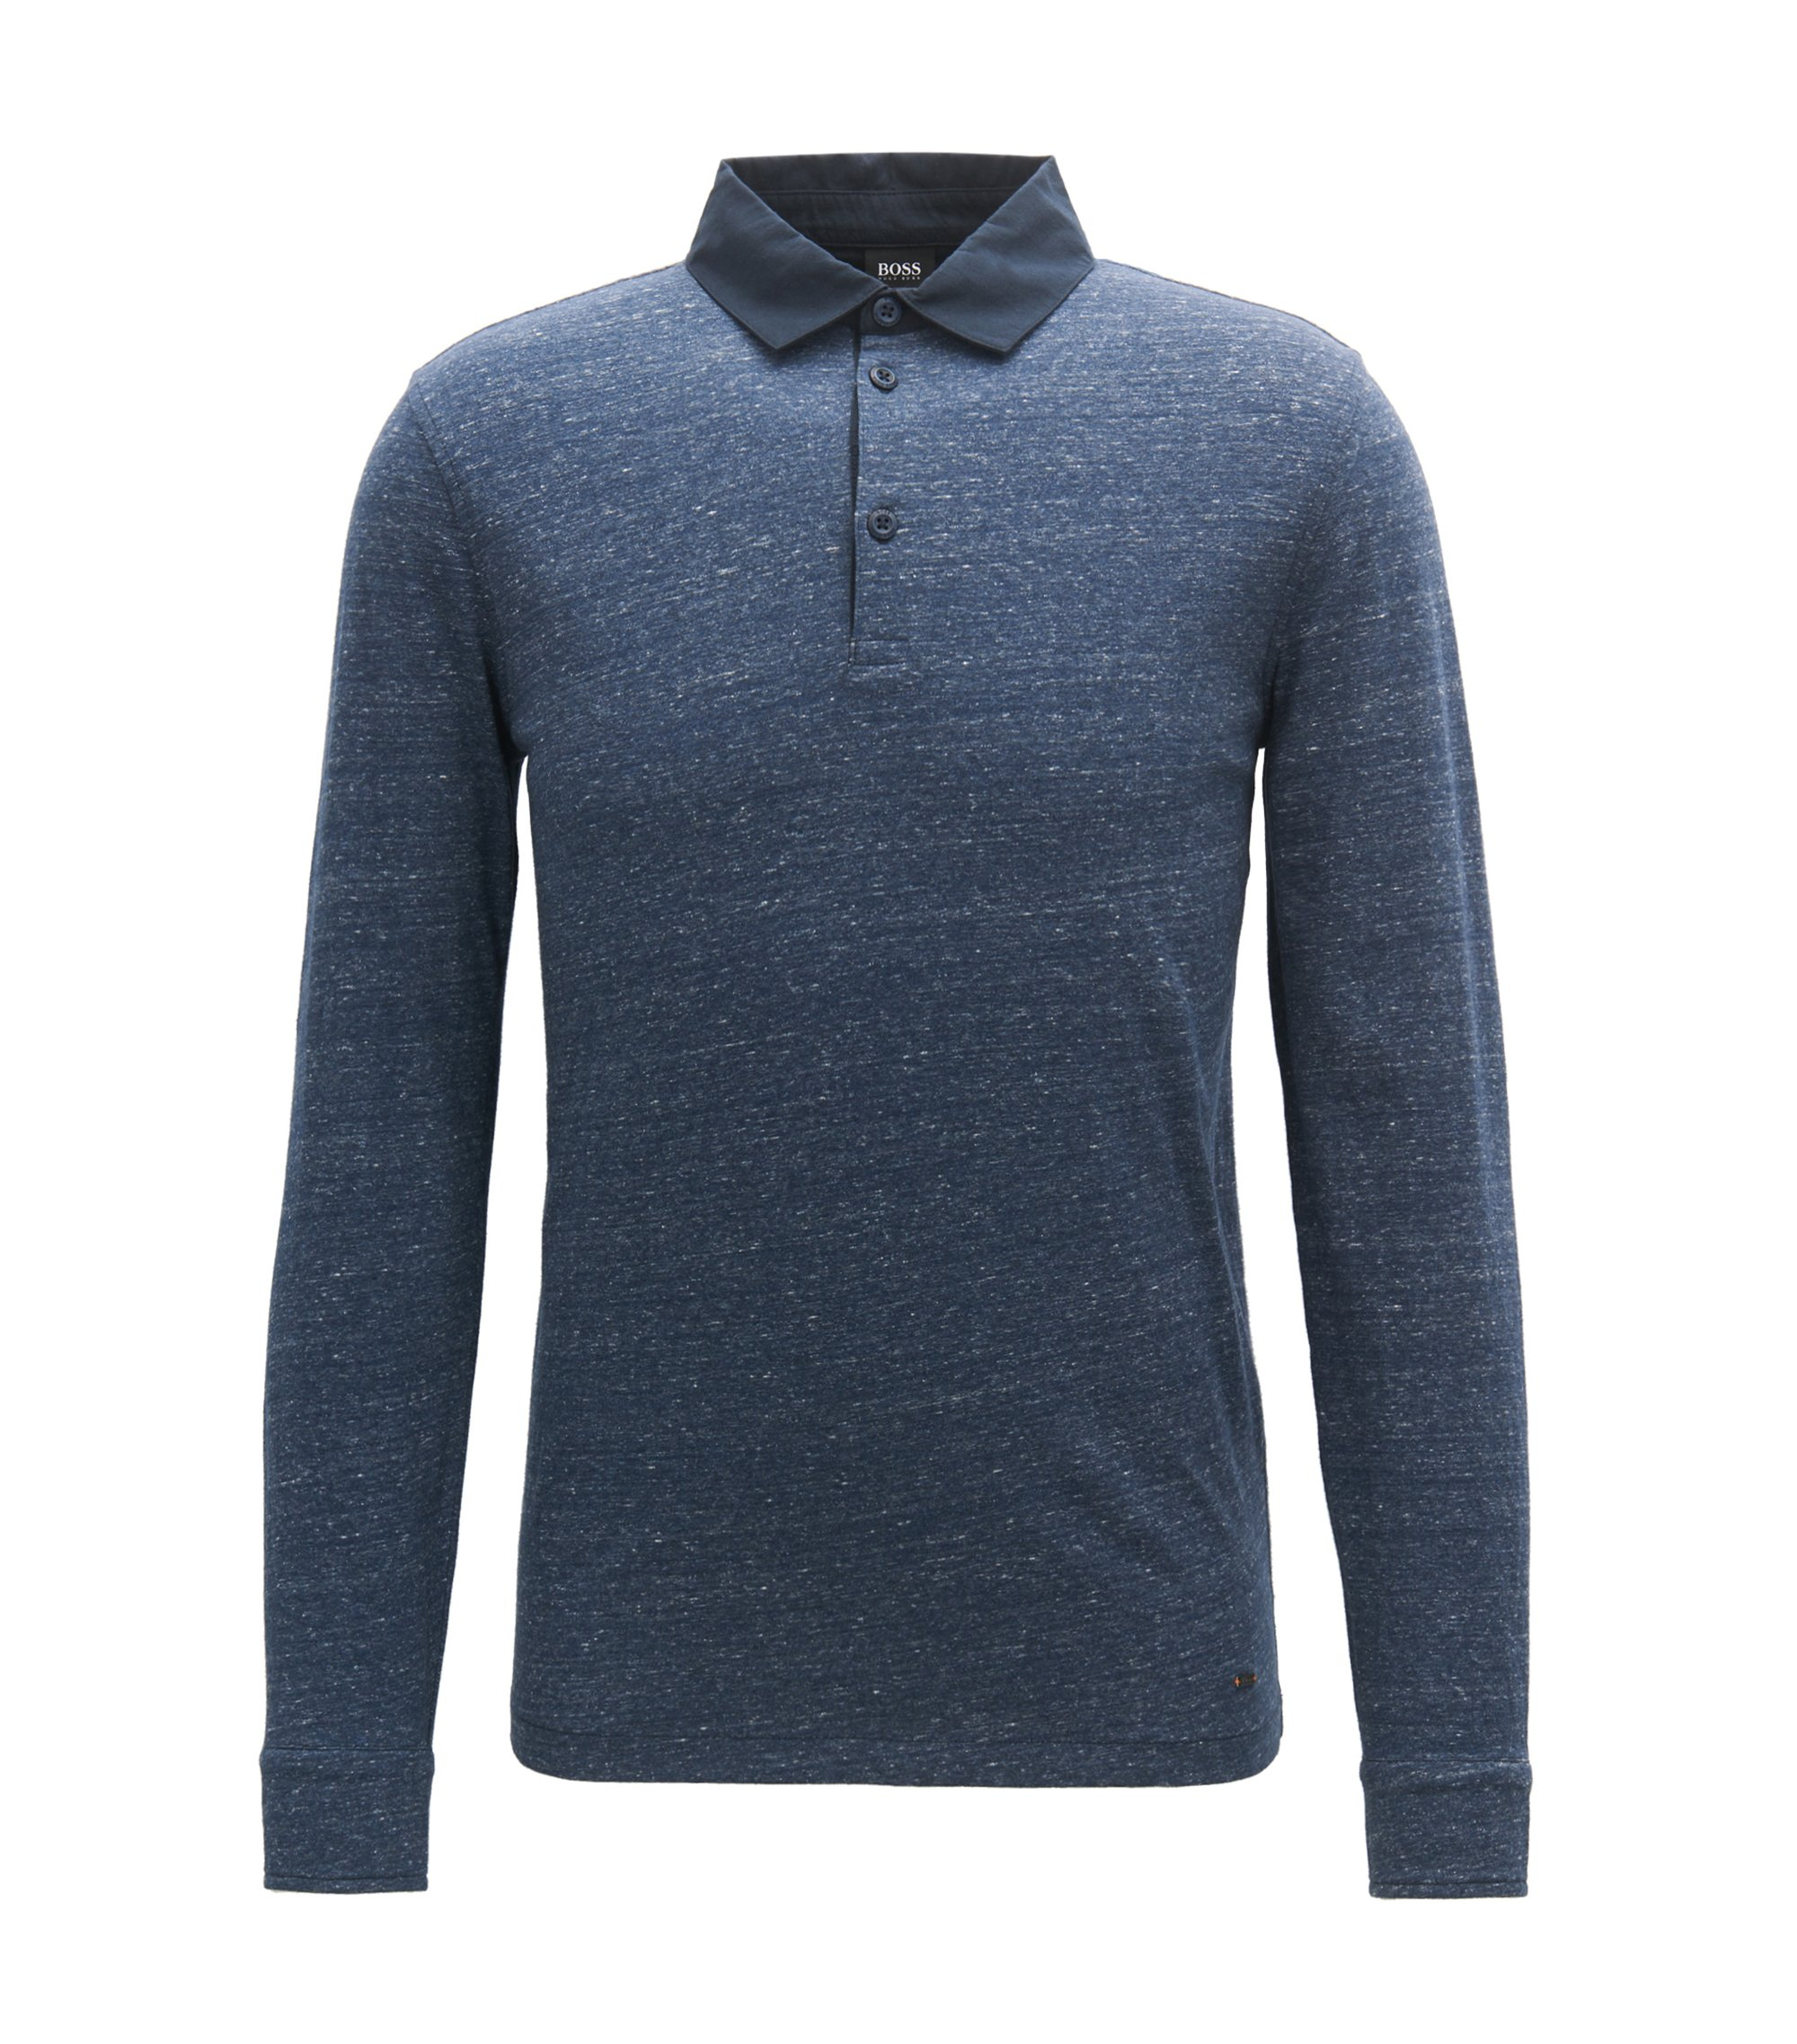 Polo relaxed fit in jersey di cotone mélange, Blu scuro